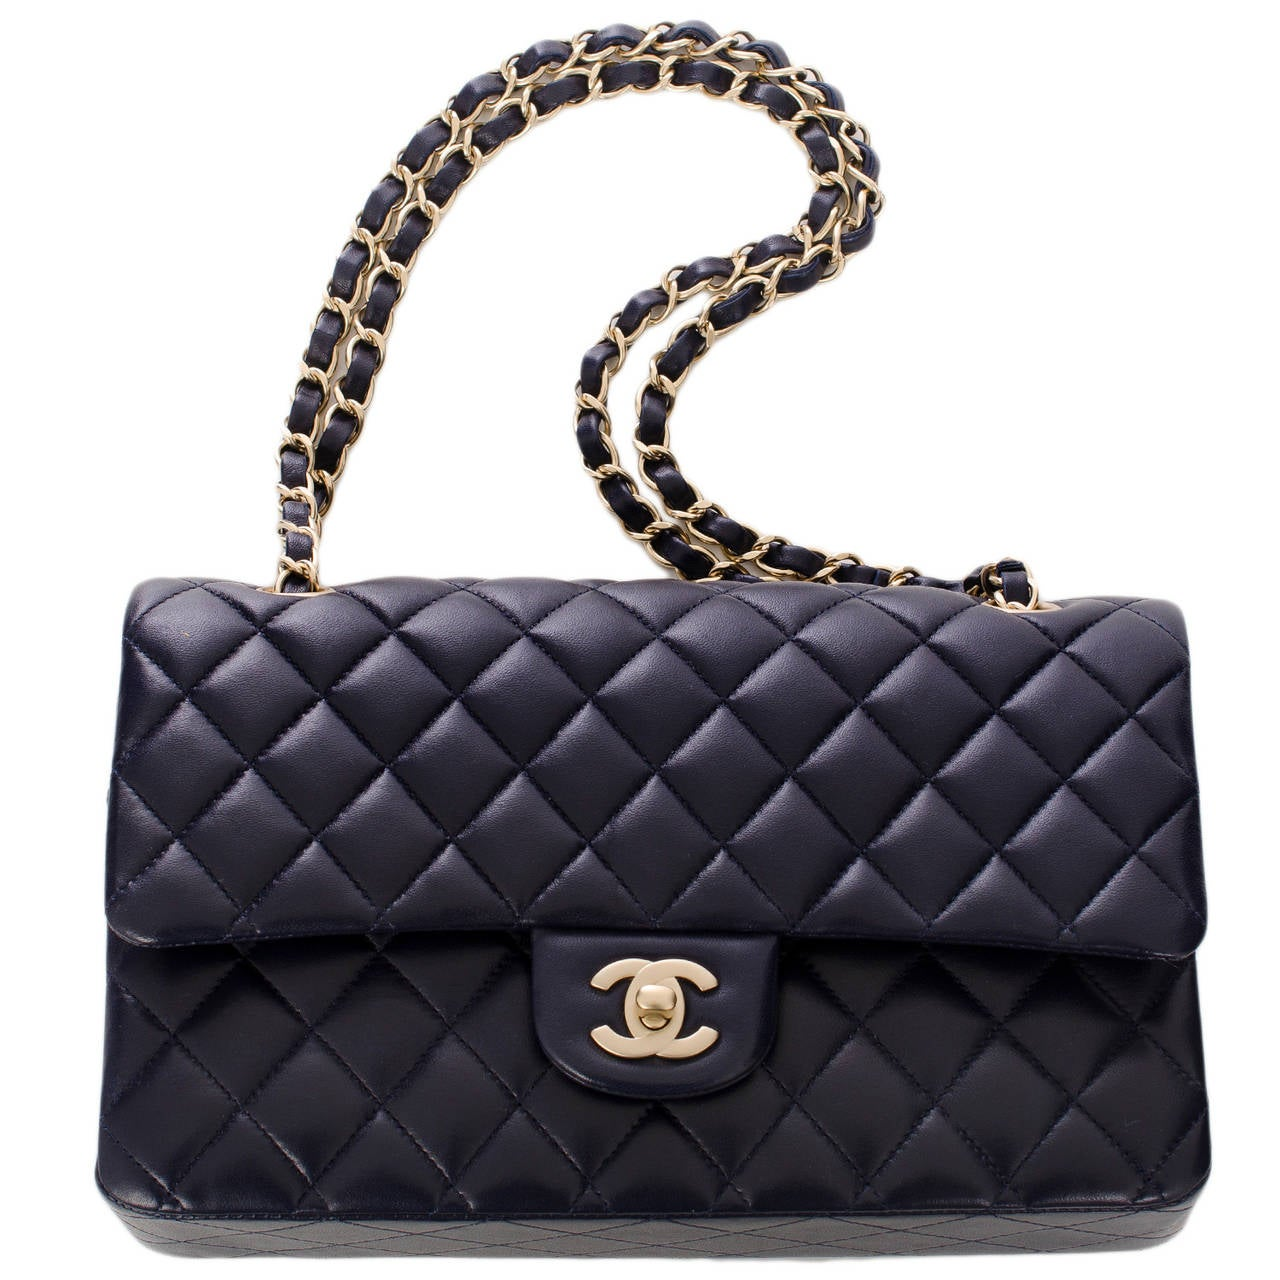 f381064f0fd9 Navy Blue Chanel Bags | Stanford Center for Opportunity Policy in ...